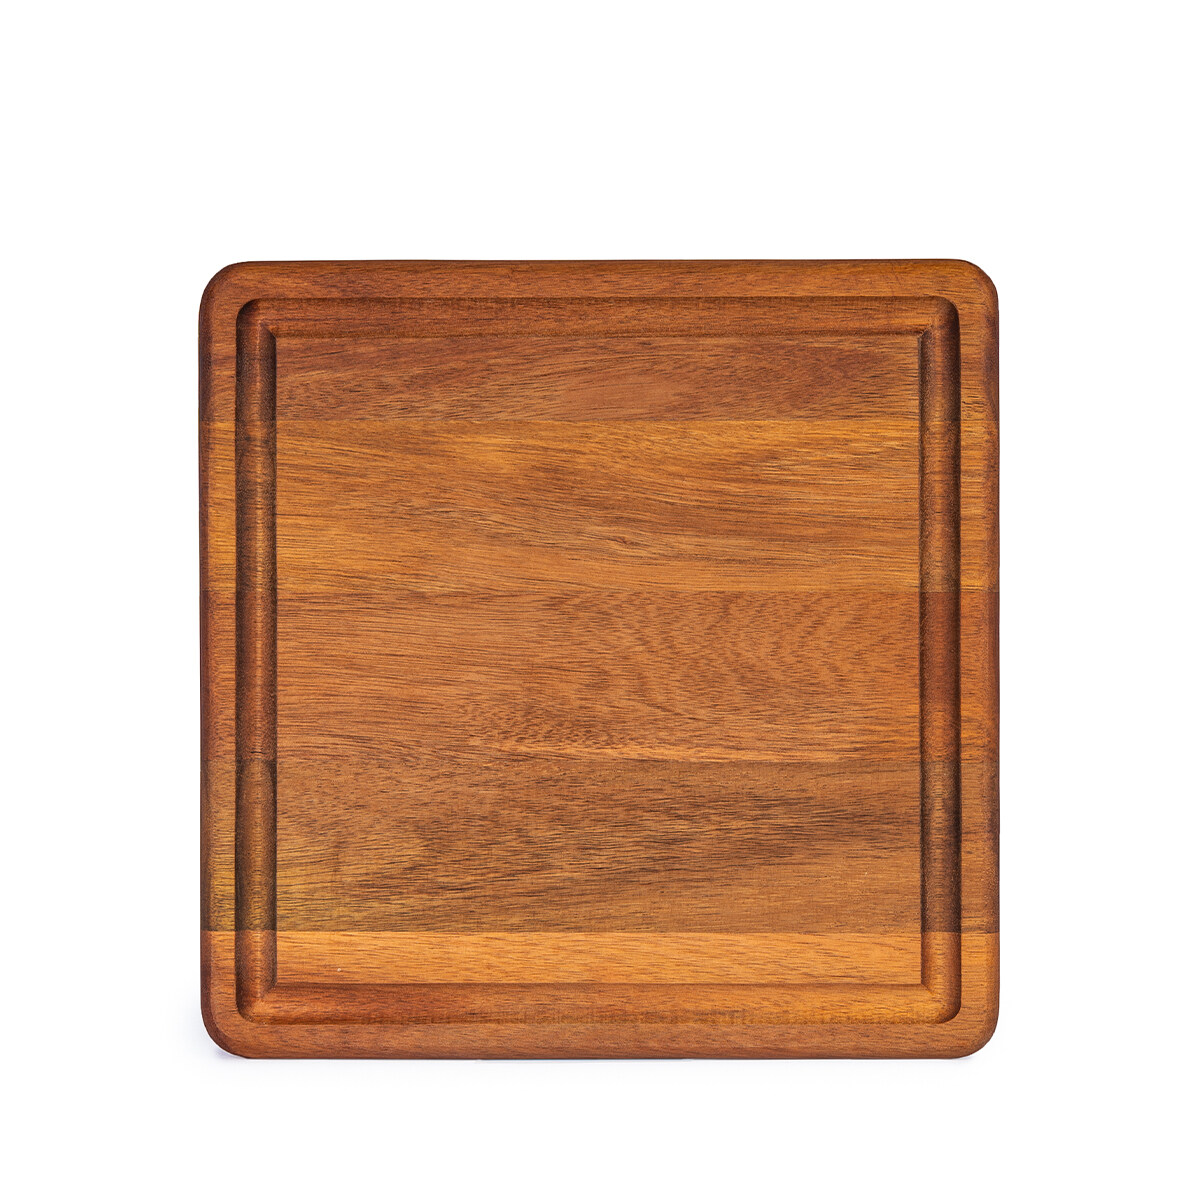 AIDEAS Cutting Board- DELICIOUS serving / chopping / wood / natural / platter / plate / acacia / dessert / dinner coffee / dinner